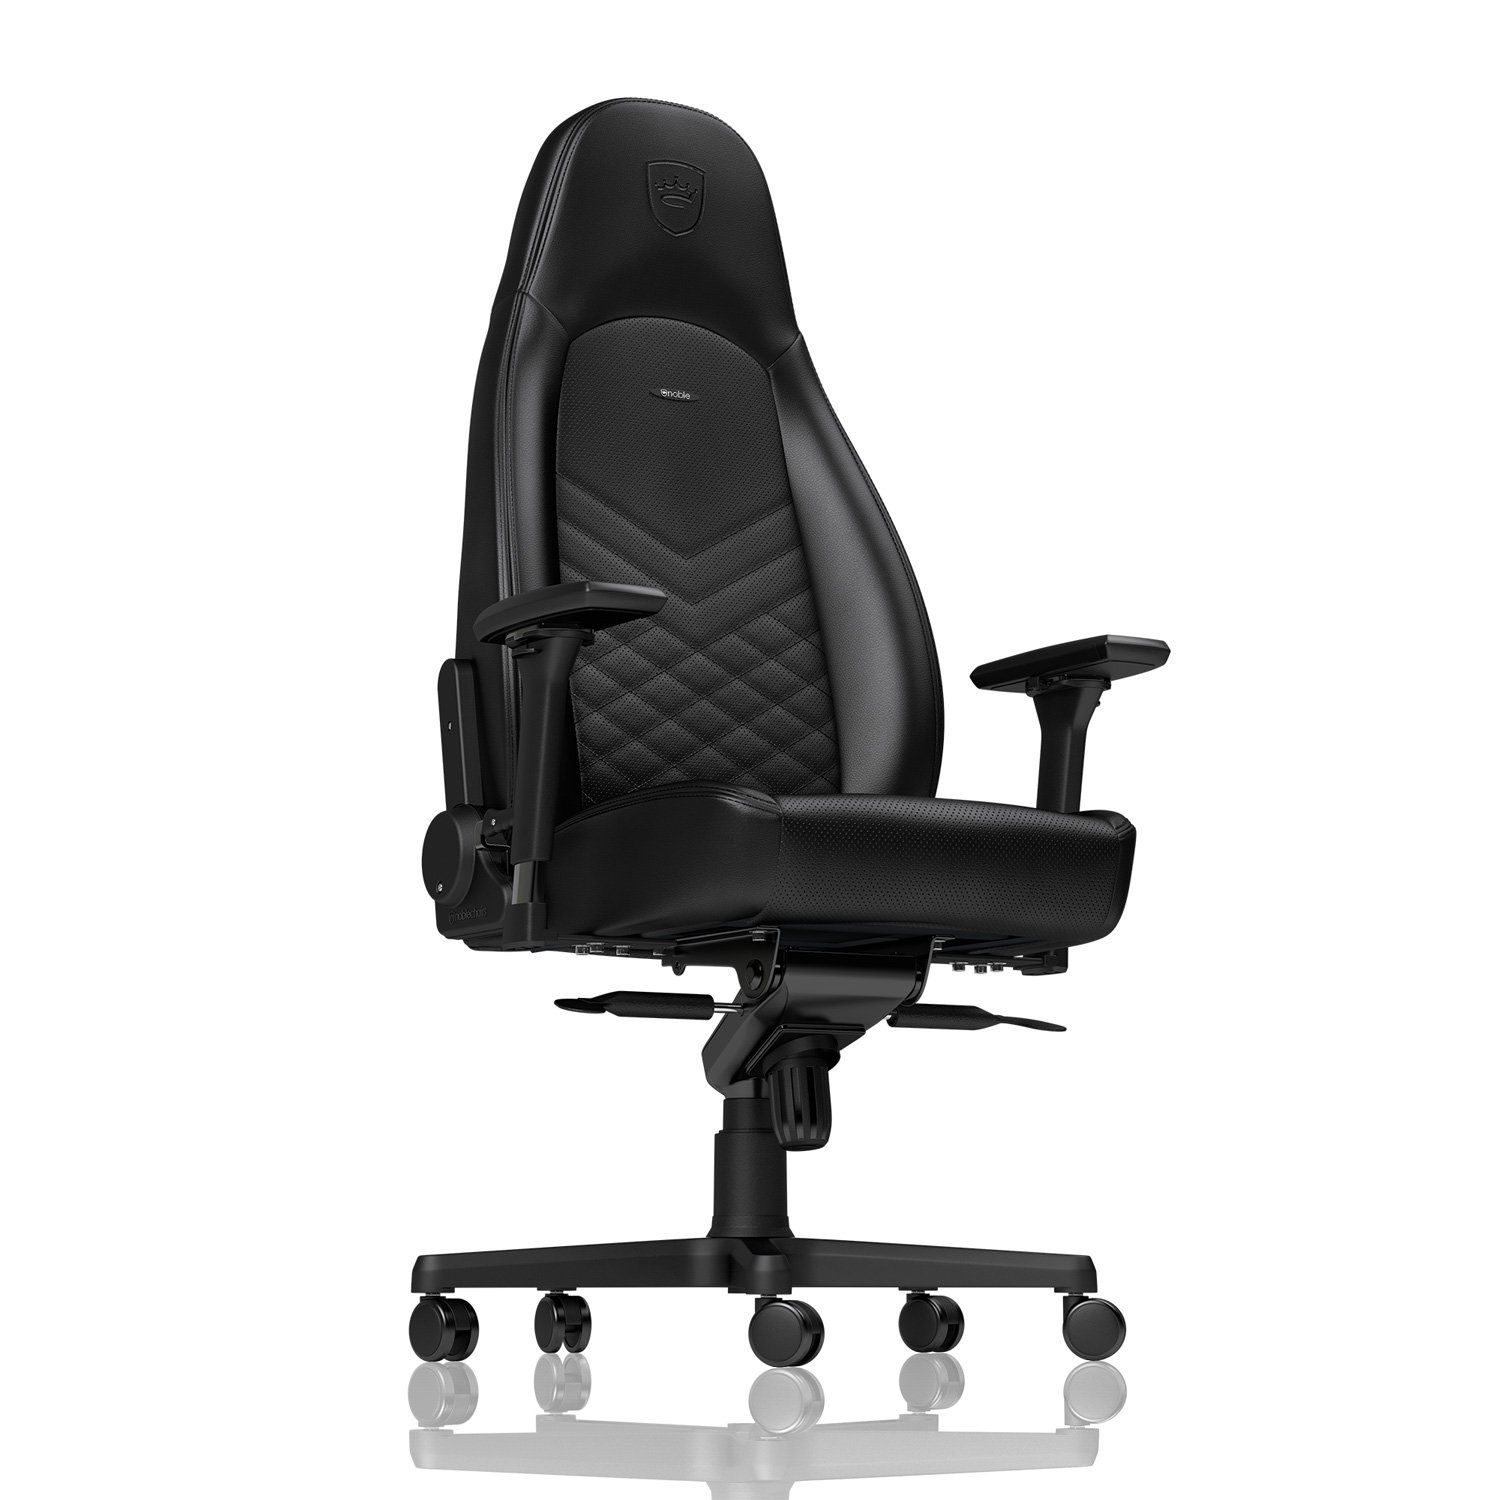 Noblechairs icon black gaming chair office chair desk chair